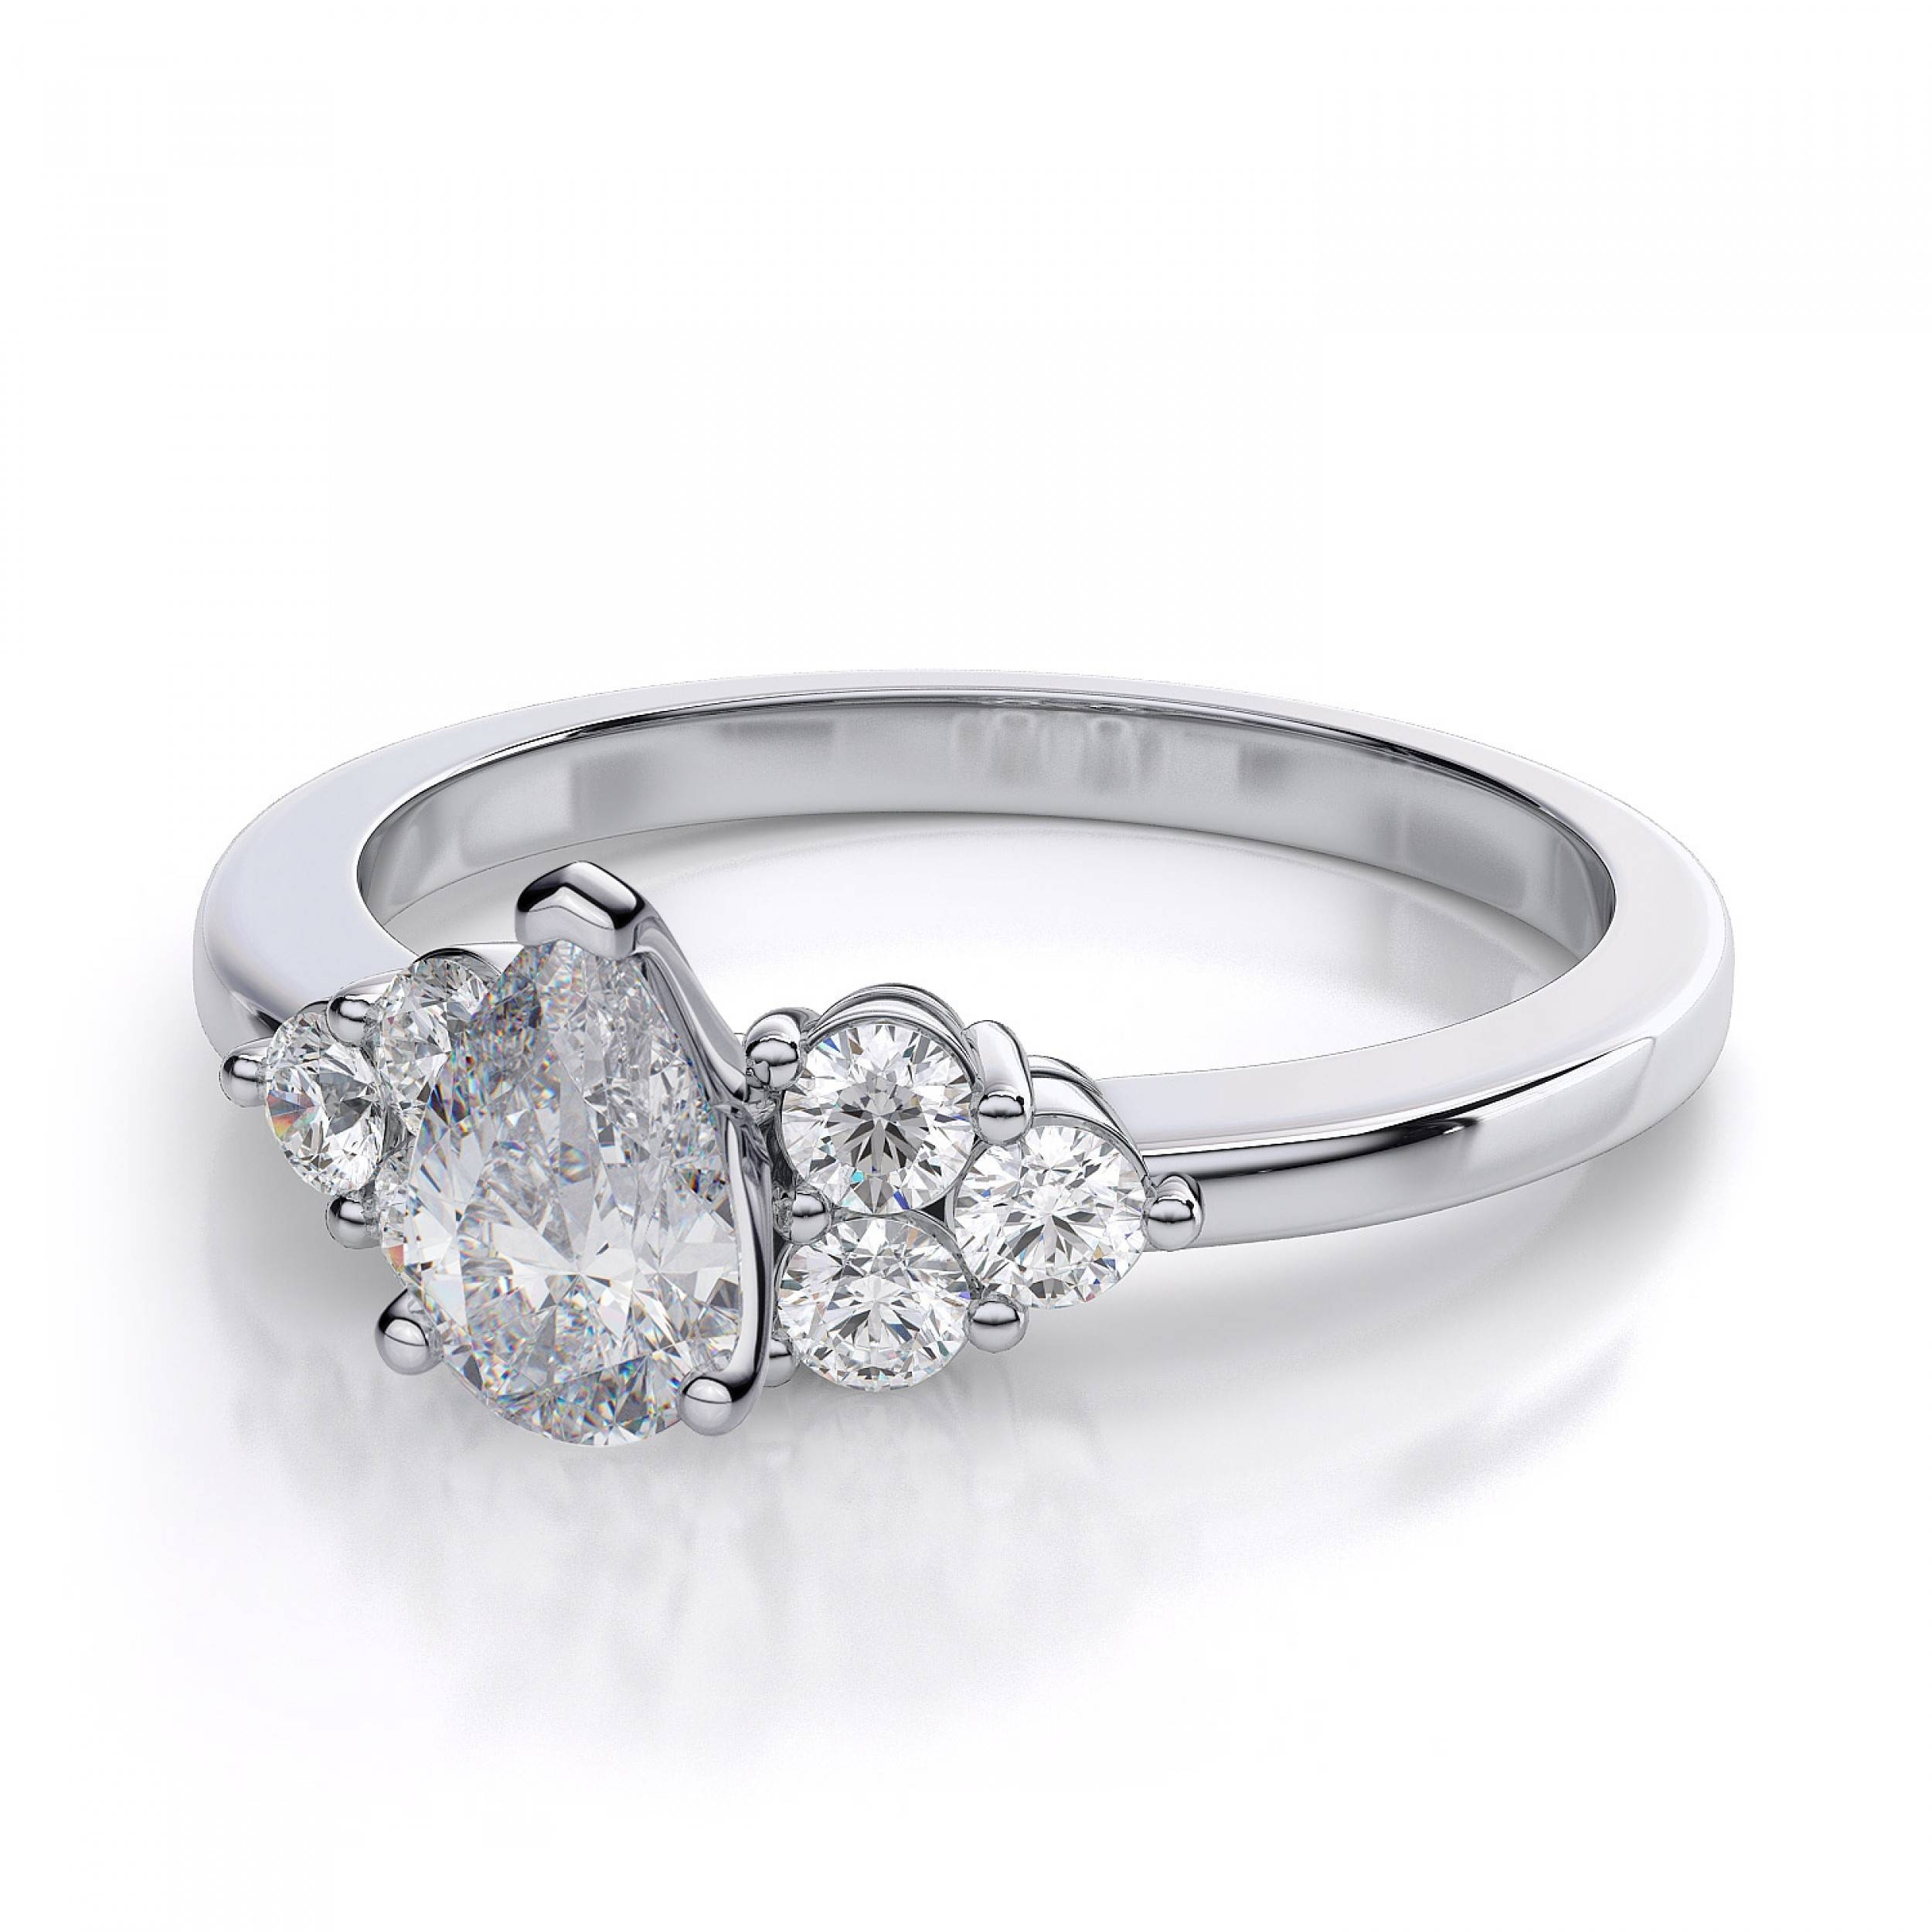 30Ctw Cluster Pear Shaped Sidestones Engagement Ring Setting In For Pear Shaped Engagement Rings Diamond Settings (View 3 of 15)